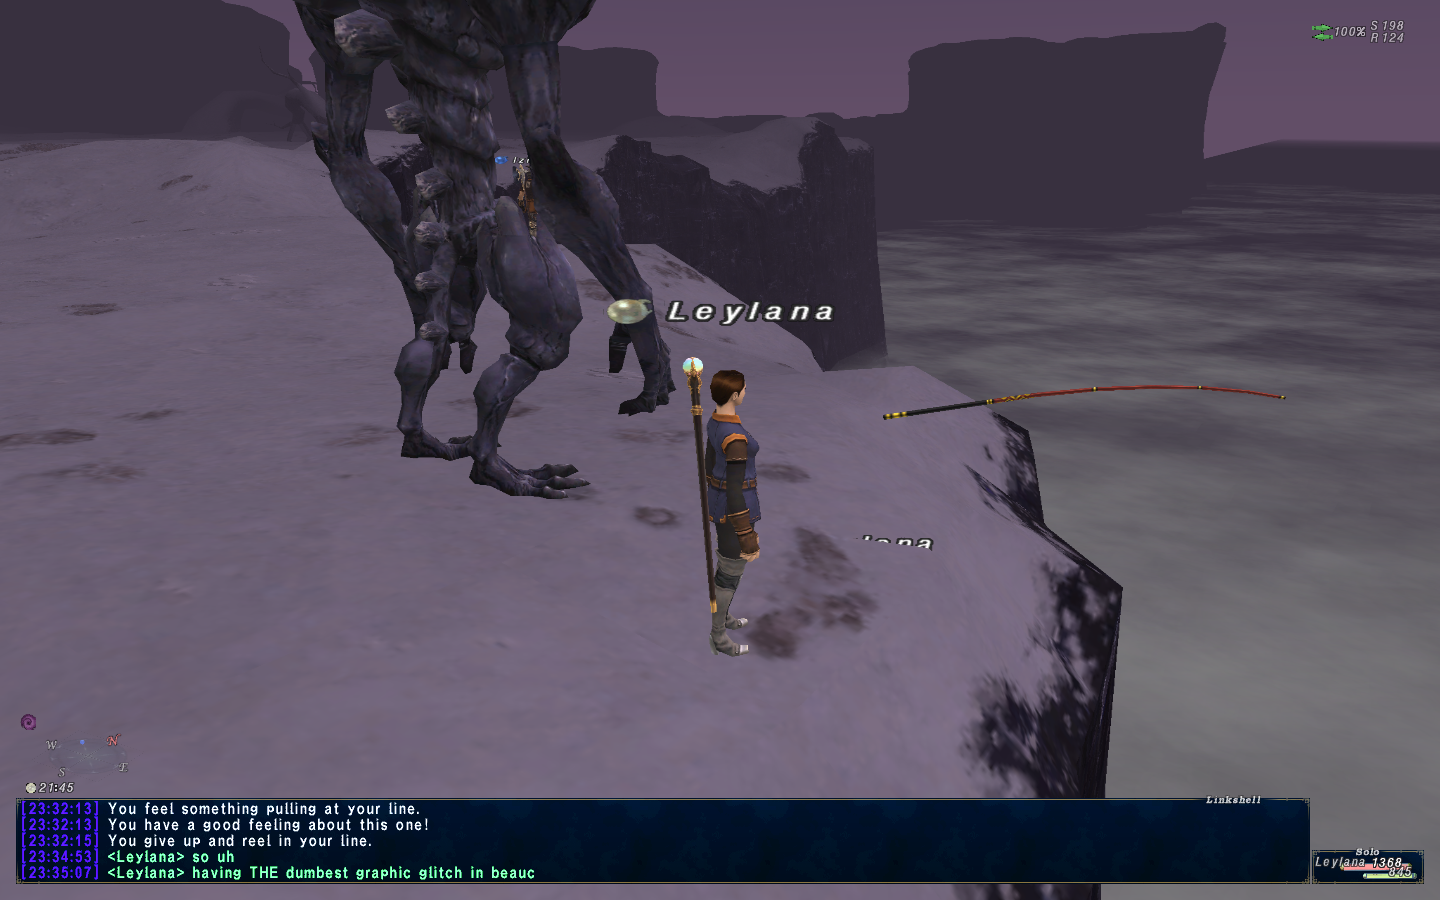 mairja ffxi trio just rest following friendly pics with name clear sorry arent super triplets moment marjami delve moments those took down trios didnt plaguevein bats